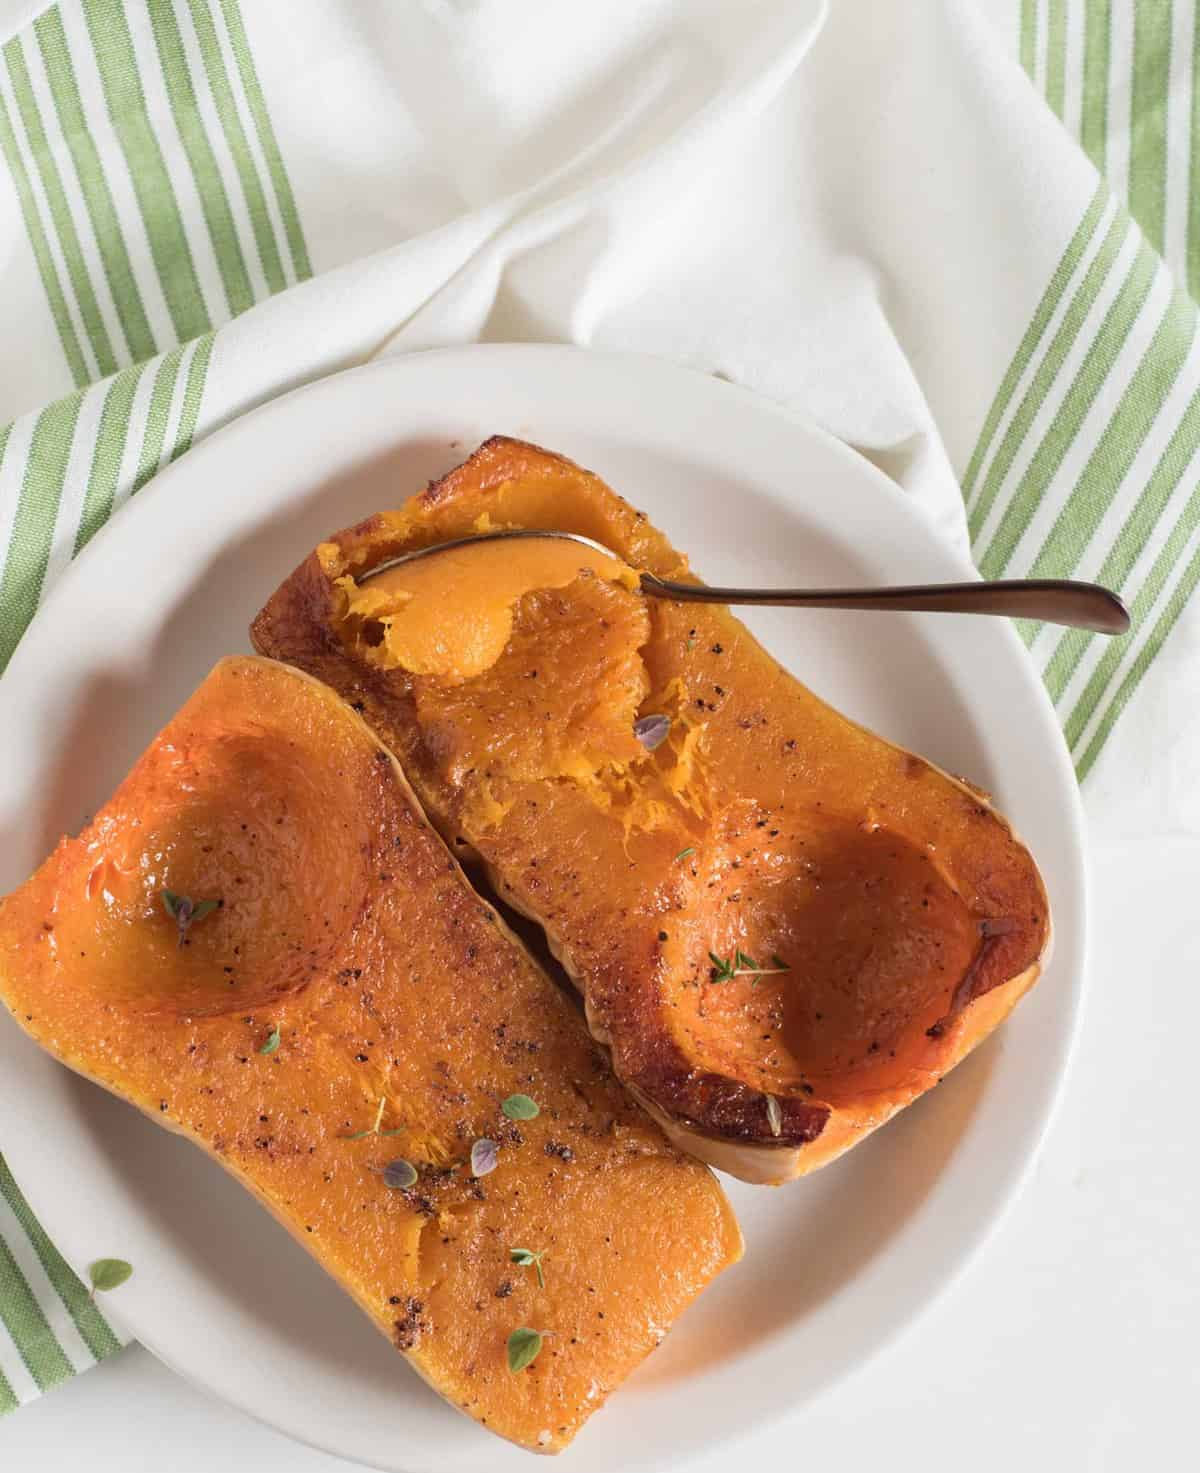 Quick and easy guide on how to roast butternut squash in the oven. You can use the roasted as a side dish or in recipes that call for pumpkin puree!